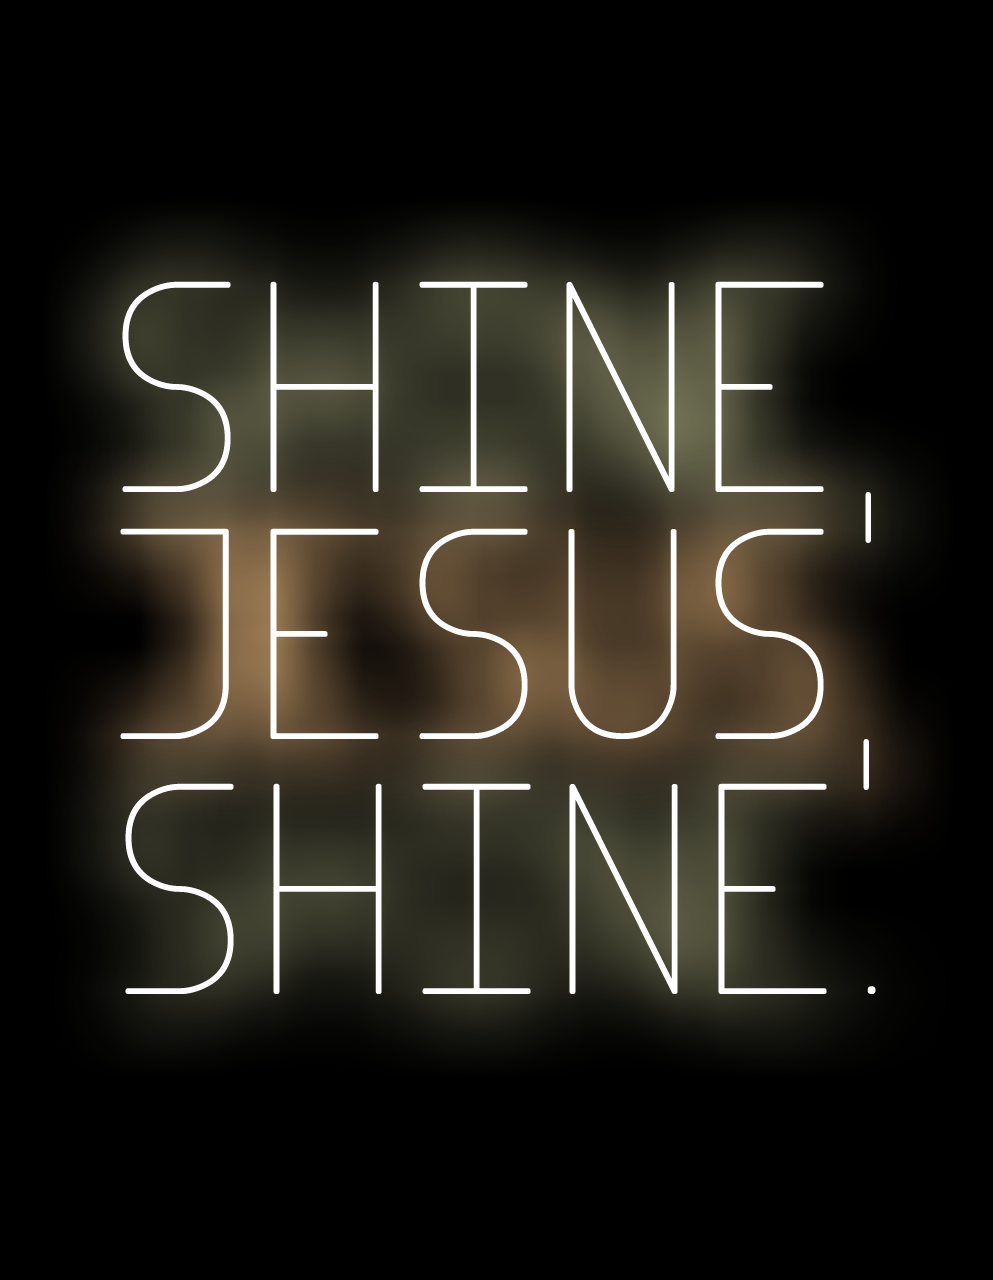 Shine, Jesus, shine, fill this land with the Father's gloryBlaze, Spirit, blaze, set our hearts on fireFlow, river, flow, flood the nations with grace and mercySend forth Your Word Lord, and let there be light. (Graham Kendrick)